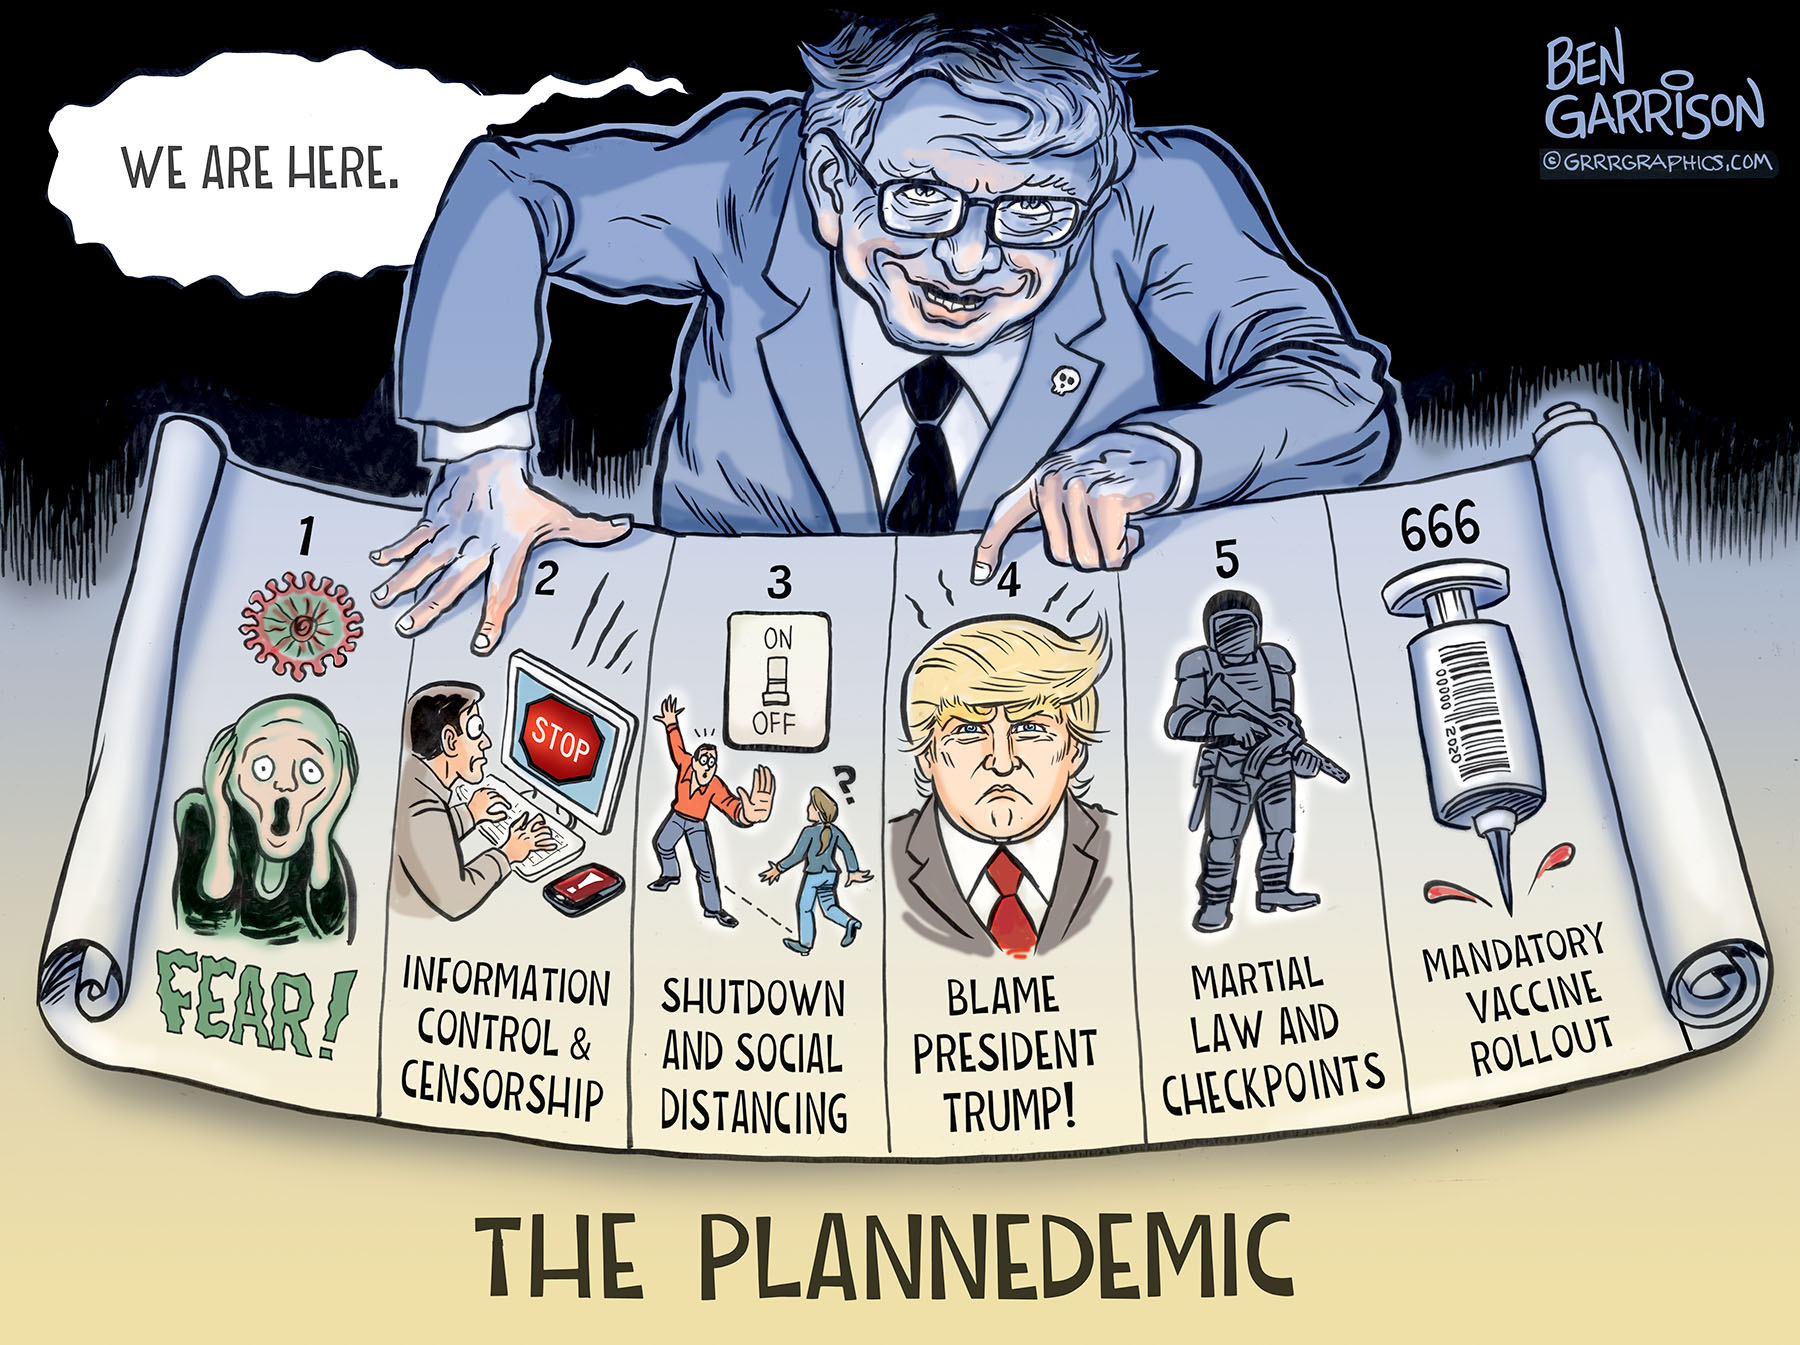 bill_gates_pandemic